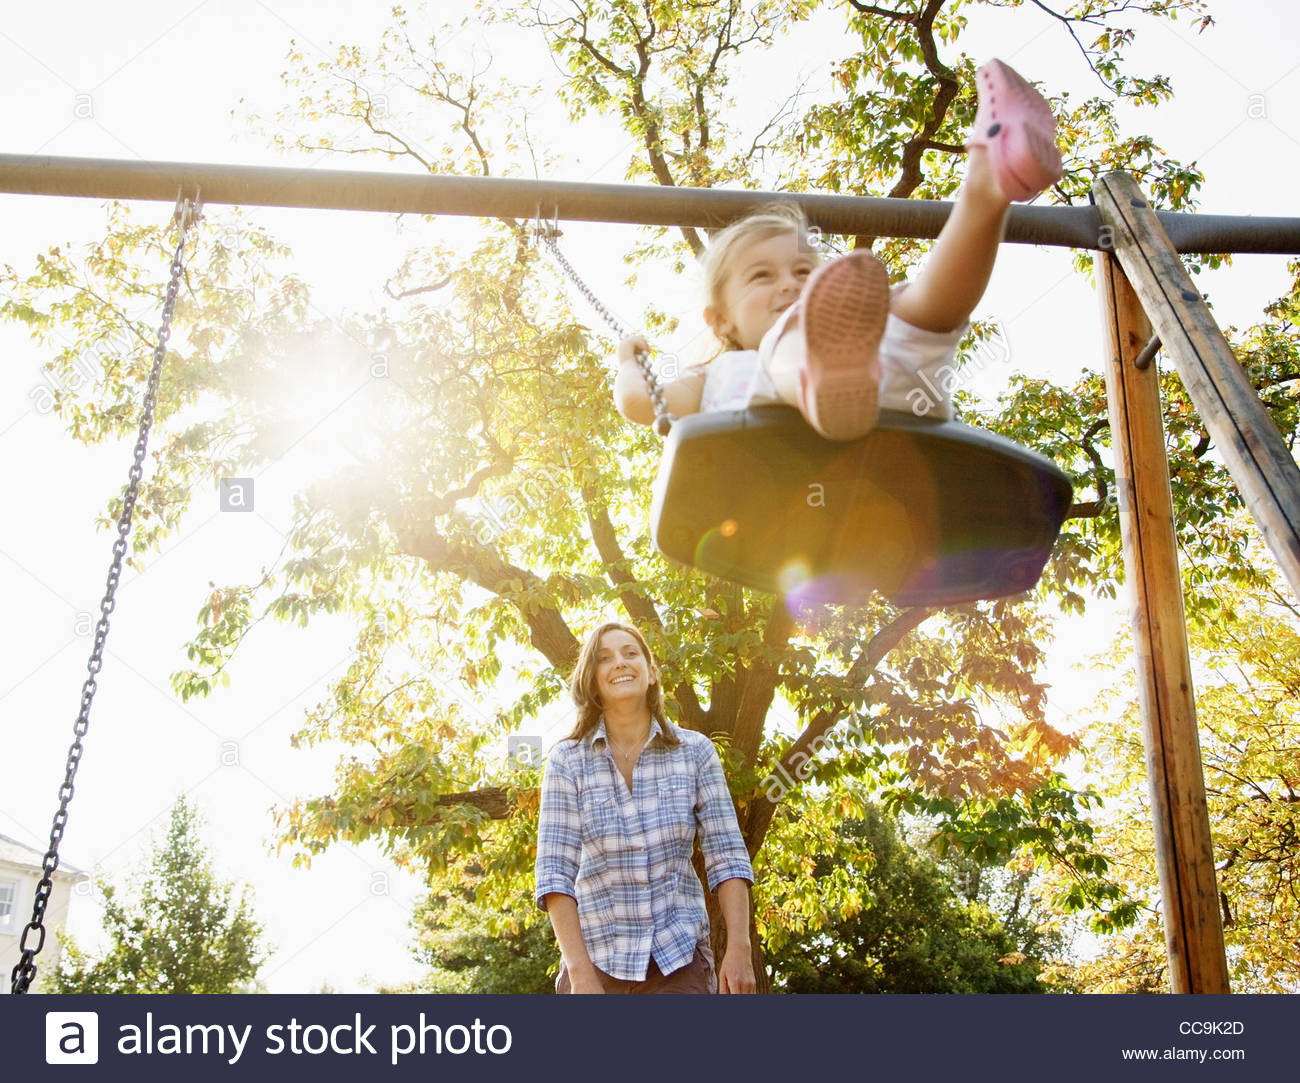 Mother pushing daughter on swing in sunny park - Stock Image